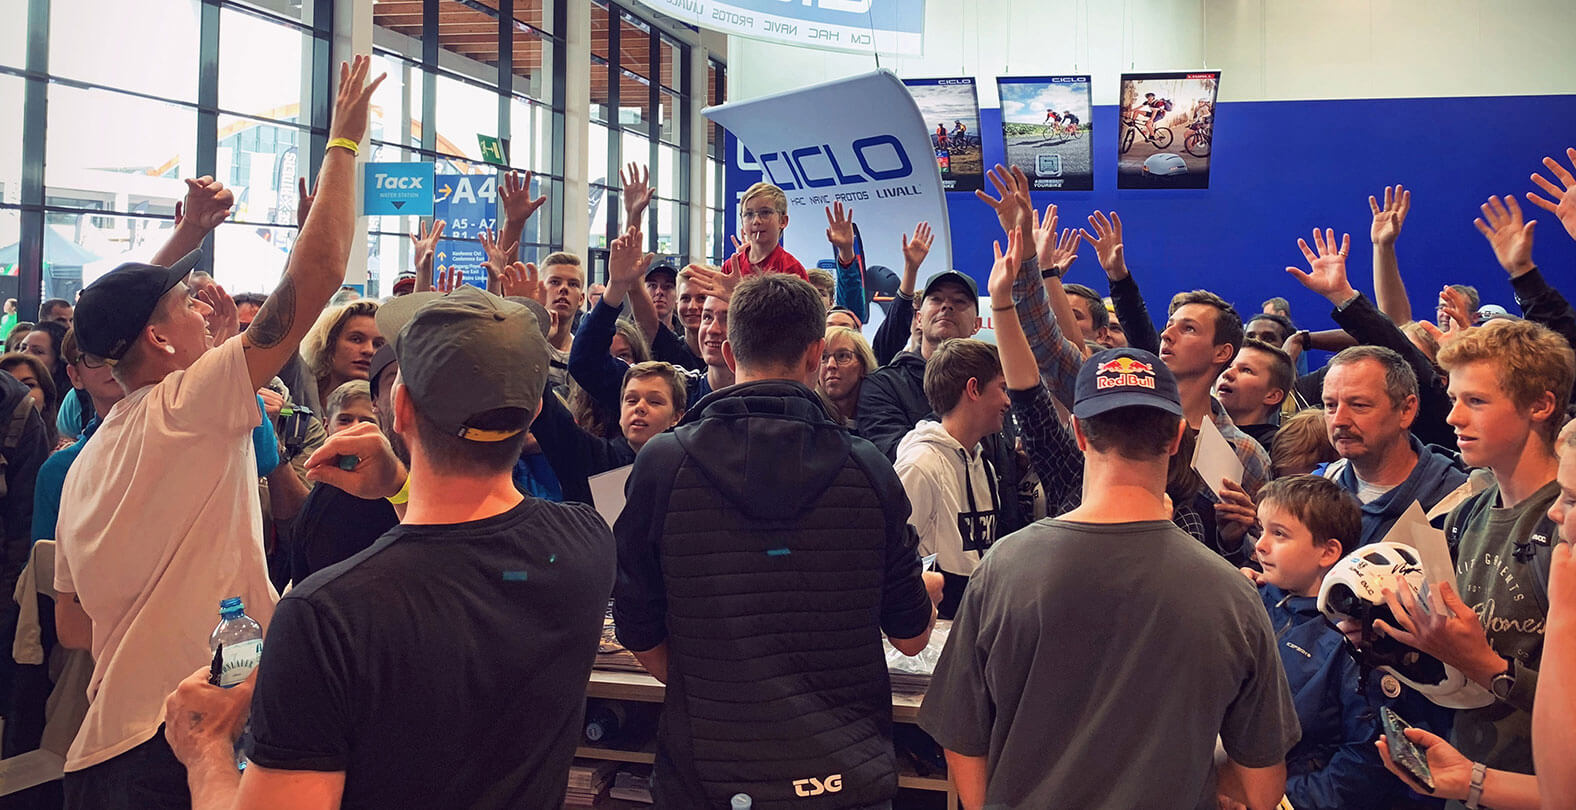 Eurobike 2019 crowded TSG booth signing session